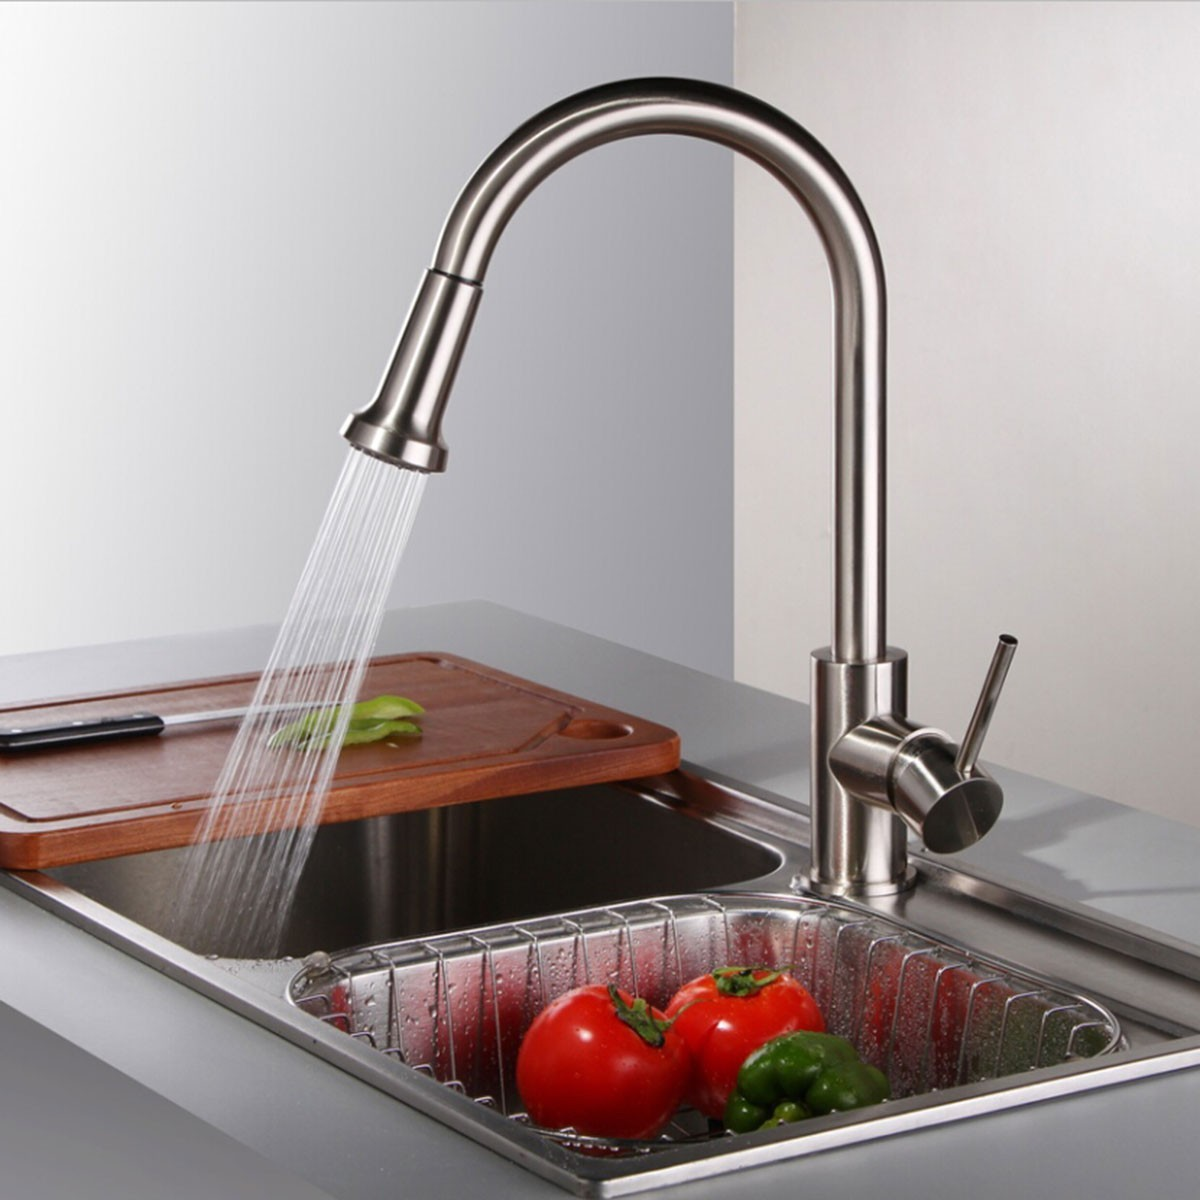 Decoraport Brass with Chrome Finish Pull Out Kitchen Faucet (D004)